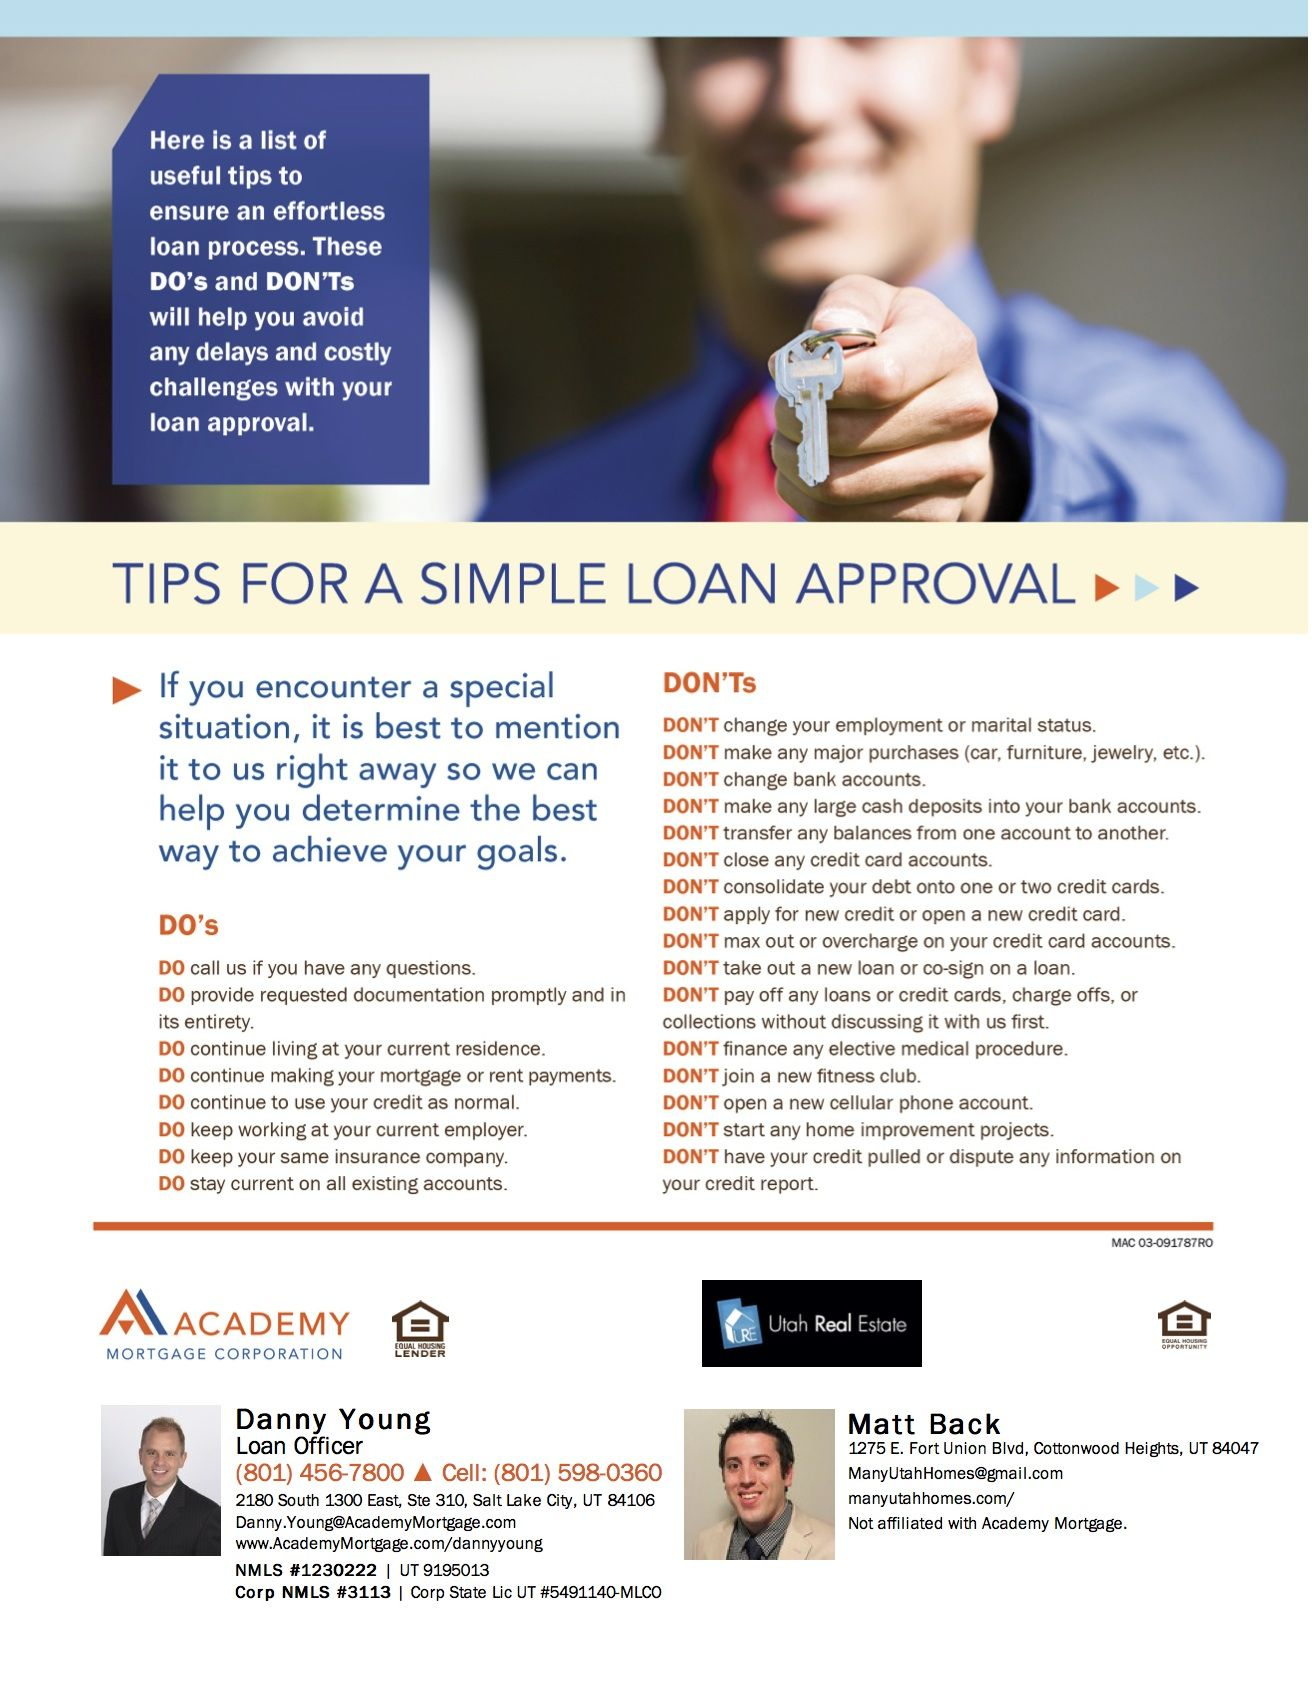 Dos and donts to help you homebuyers avoid delays and